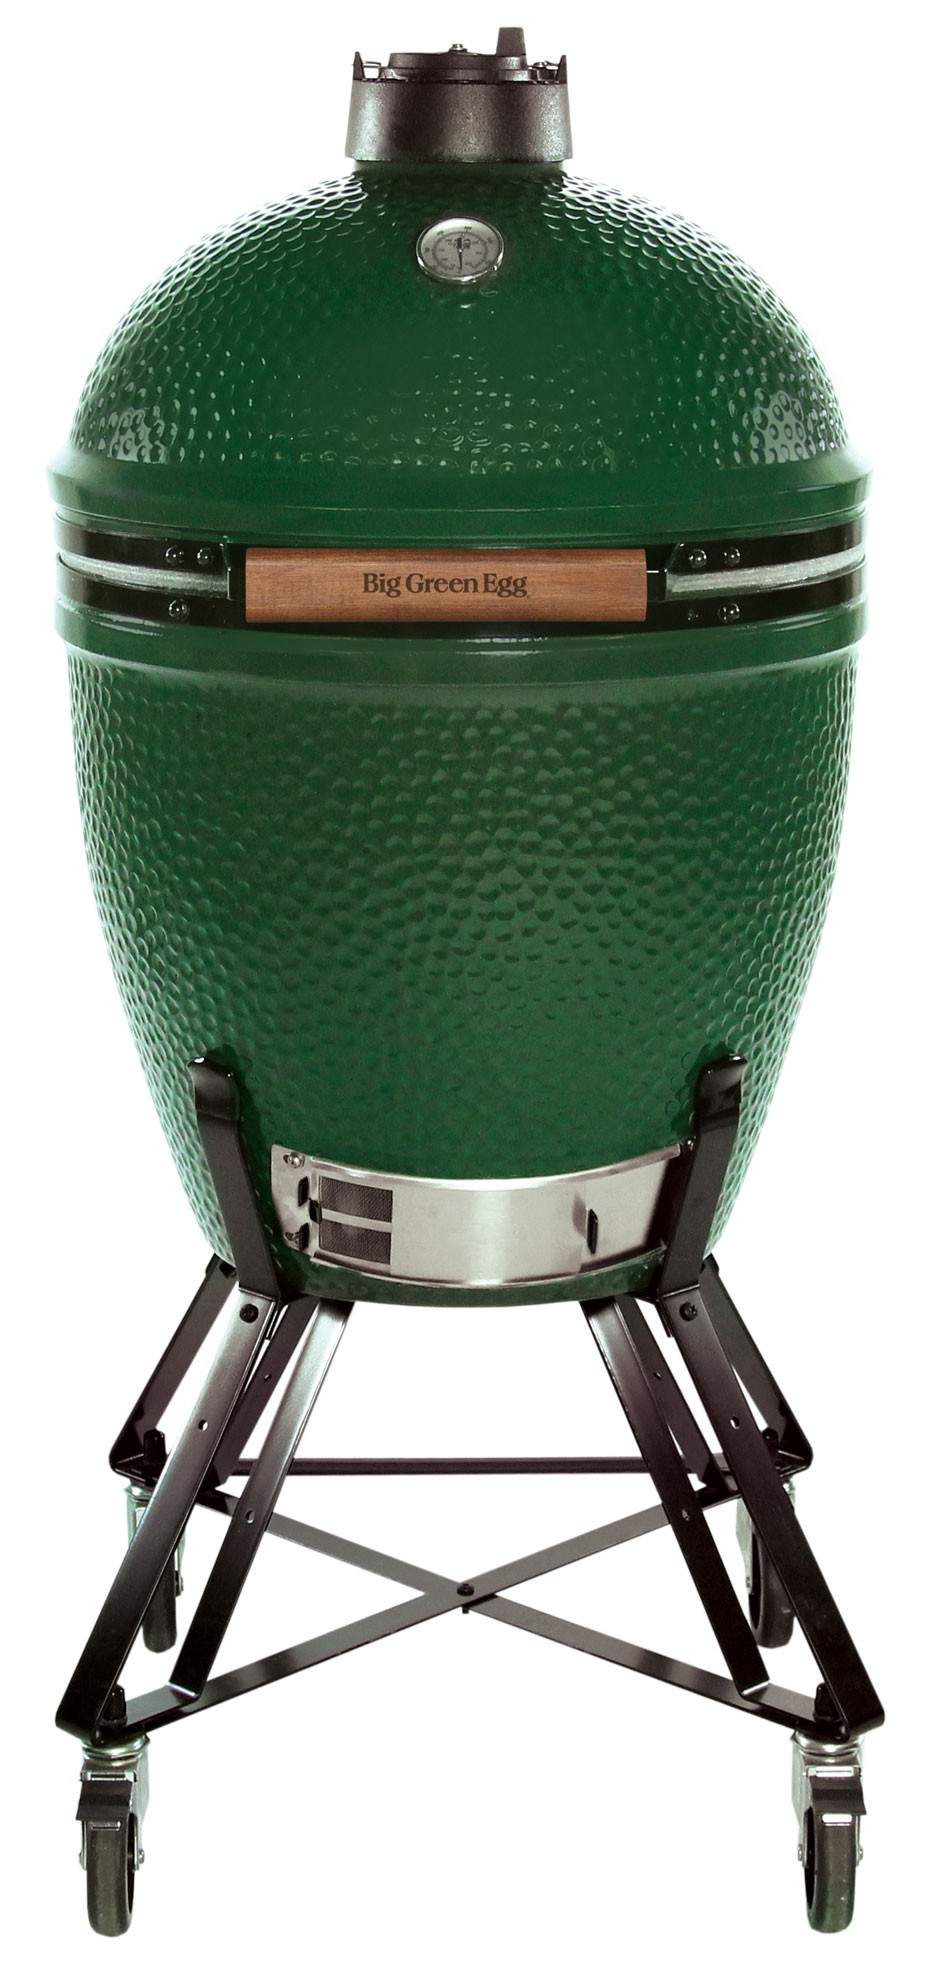 A beginner's guide to Kamado cooking (Big Egg-style) on a budget